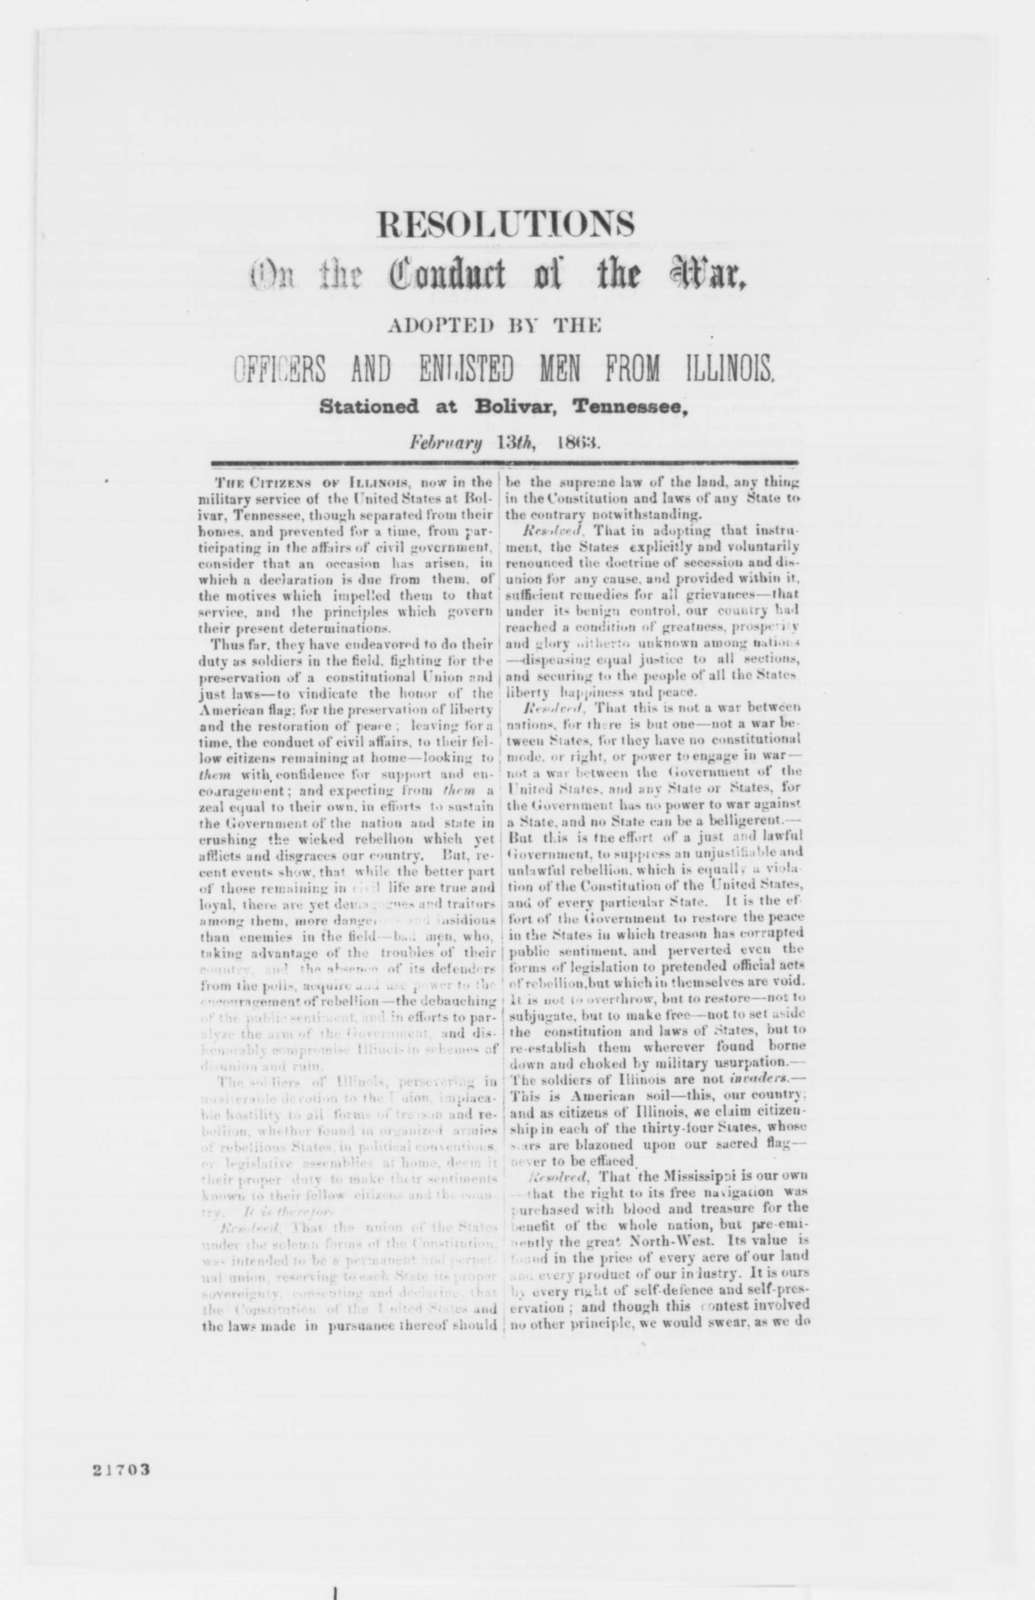 Illinois Troops at Bolivar, Tennessee, Friday, February 13, 1863  (Printed Resolutions)